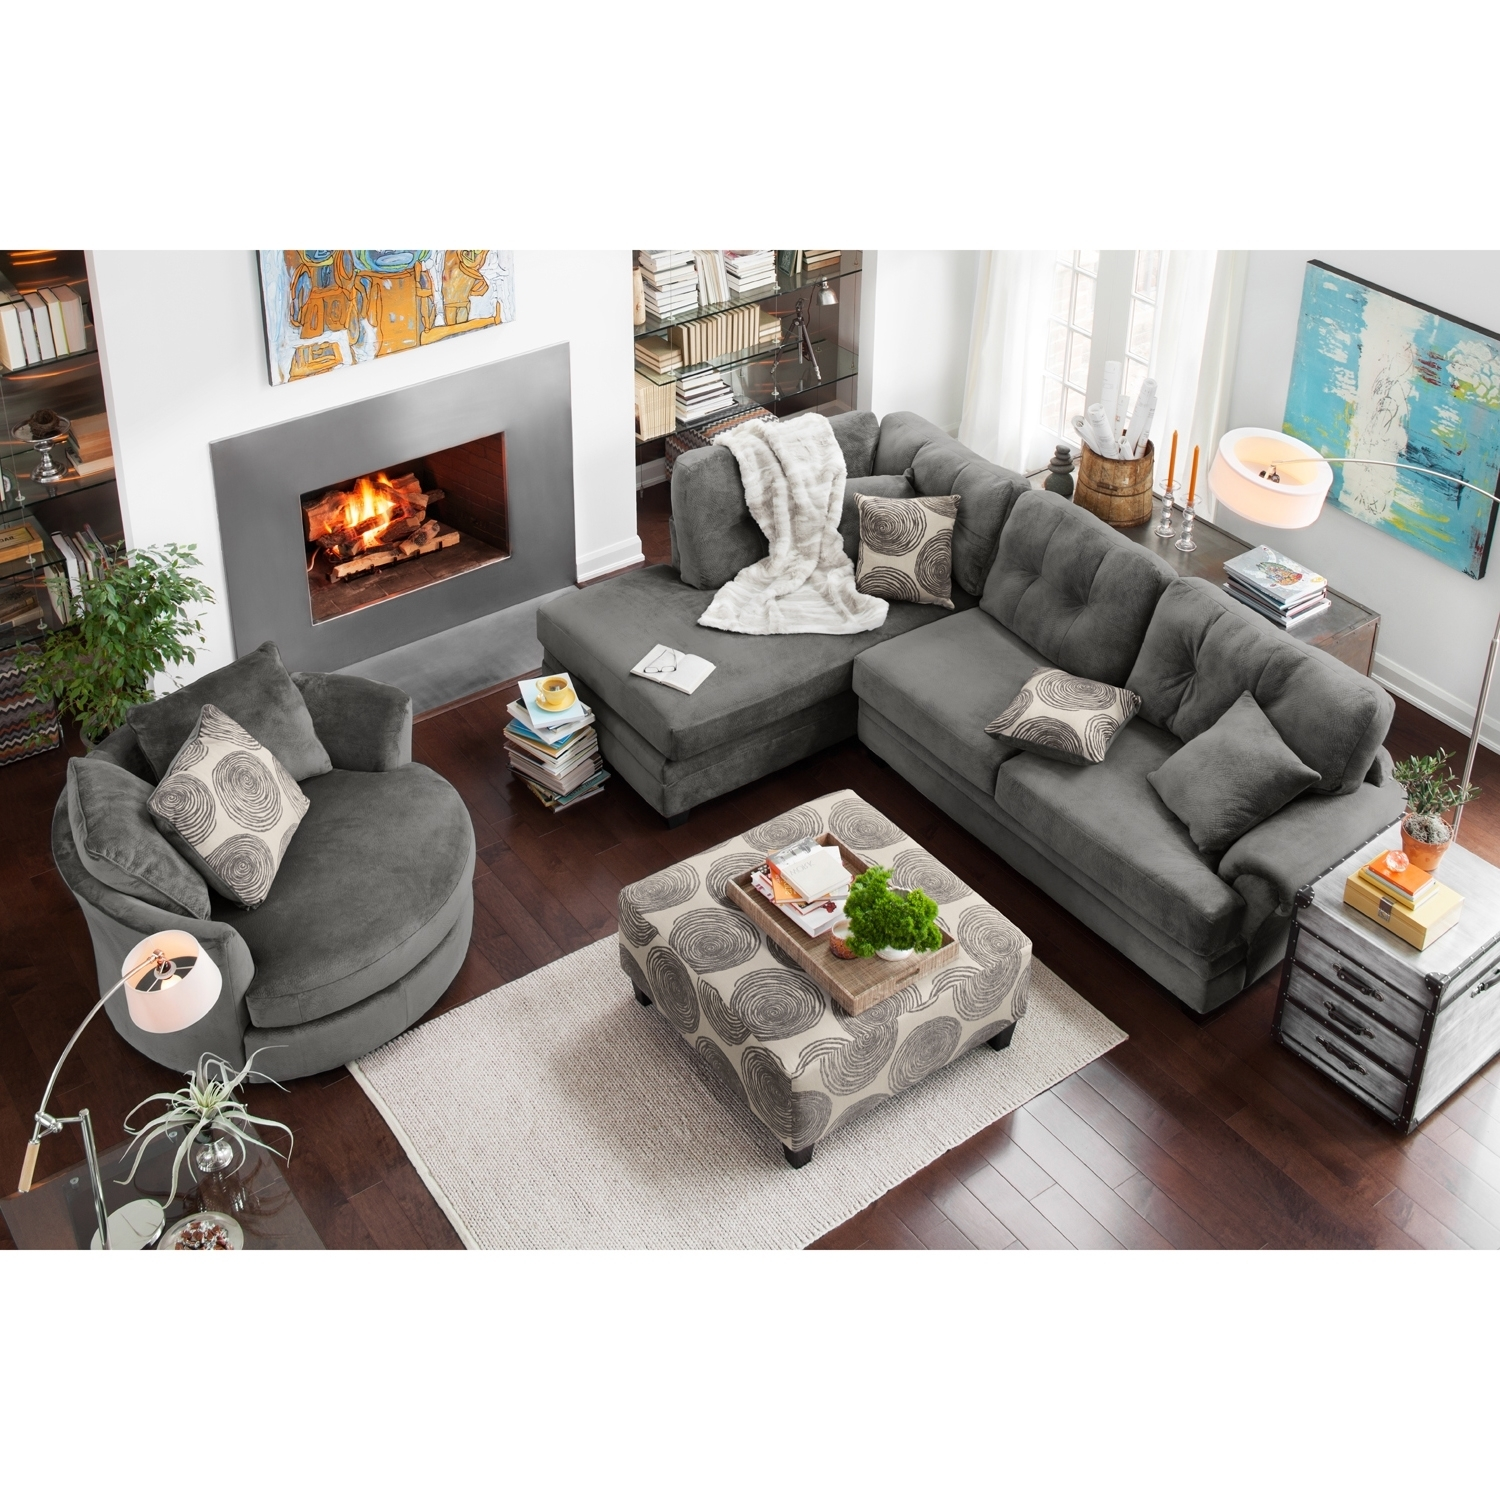 Left Facing Sectional Sofa Leather Arm Truscotti Stock Rooms Gray Throughout Tenny Cognac 2 Piece Right Facing Chaise Sectionals With 2 Headrest (Image 13 of 25)